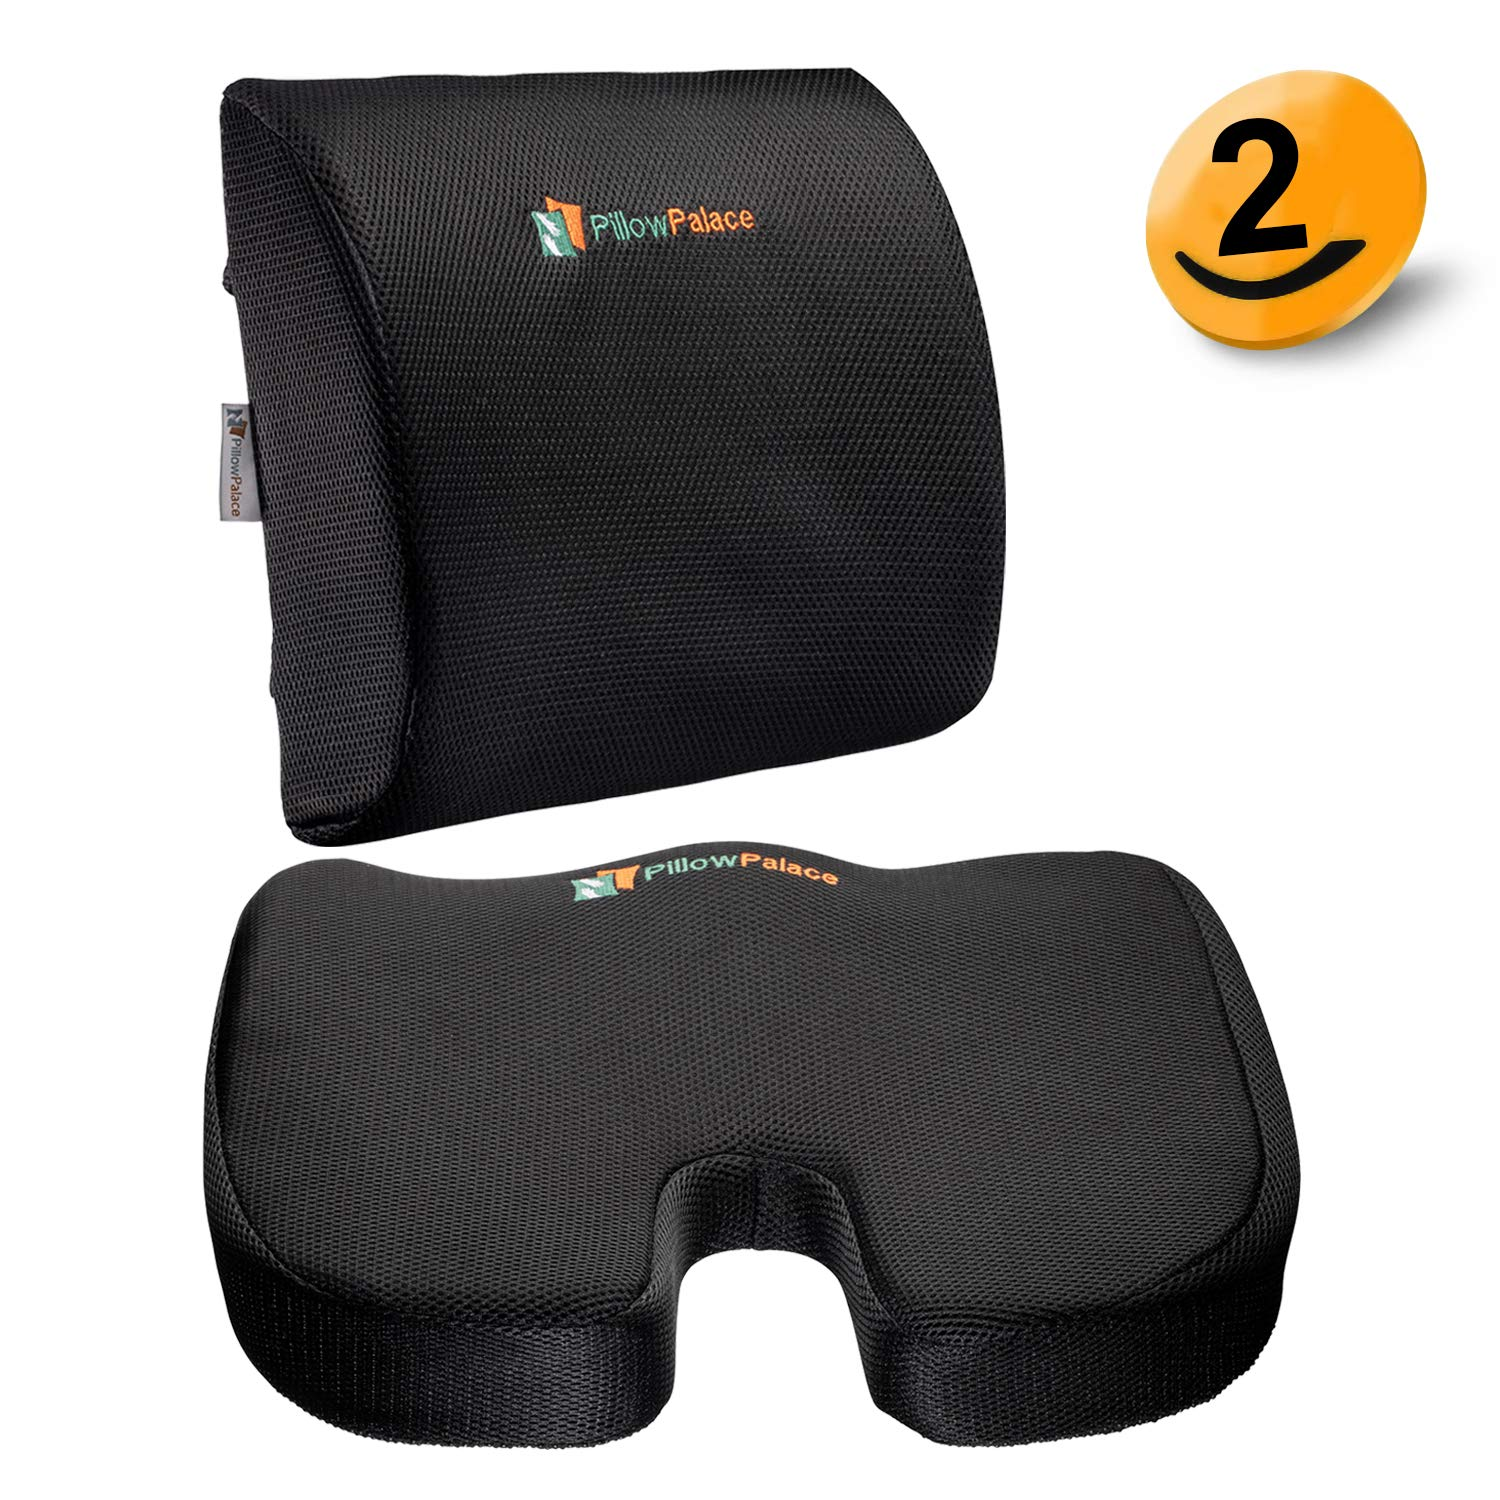 pillow palace | Coccyx Memory Foam Seat Cushion Set | Lumbar Support Pillow and Backrest | Non-Slip Bottom | Breathable Mesh Cover | Adjustable Non-Sliding Straps | Black